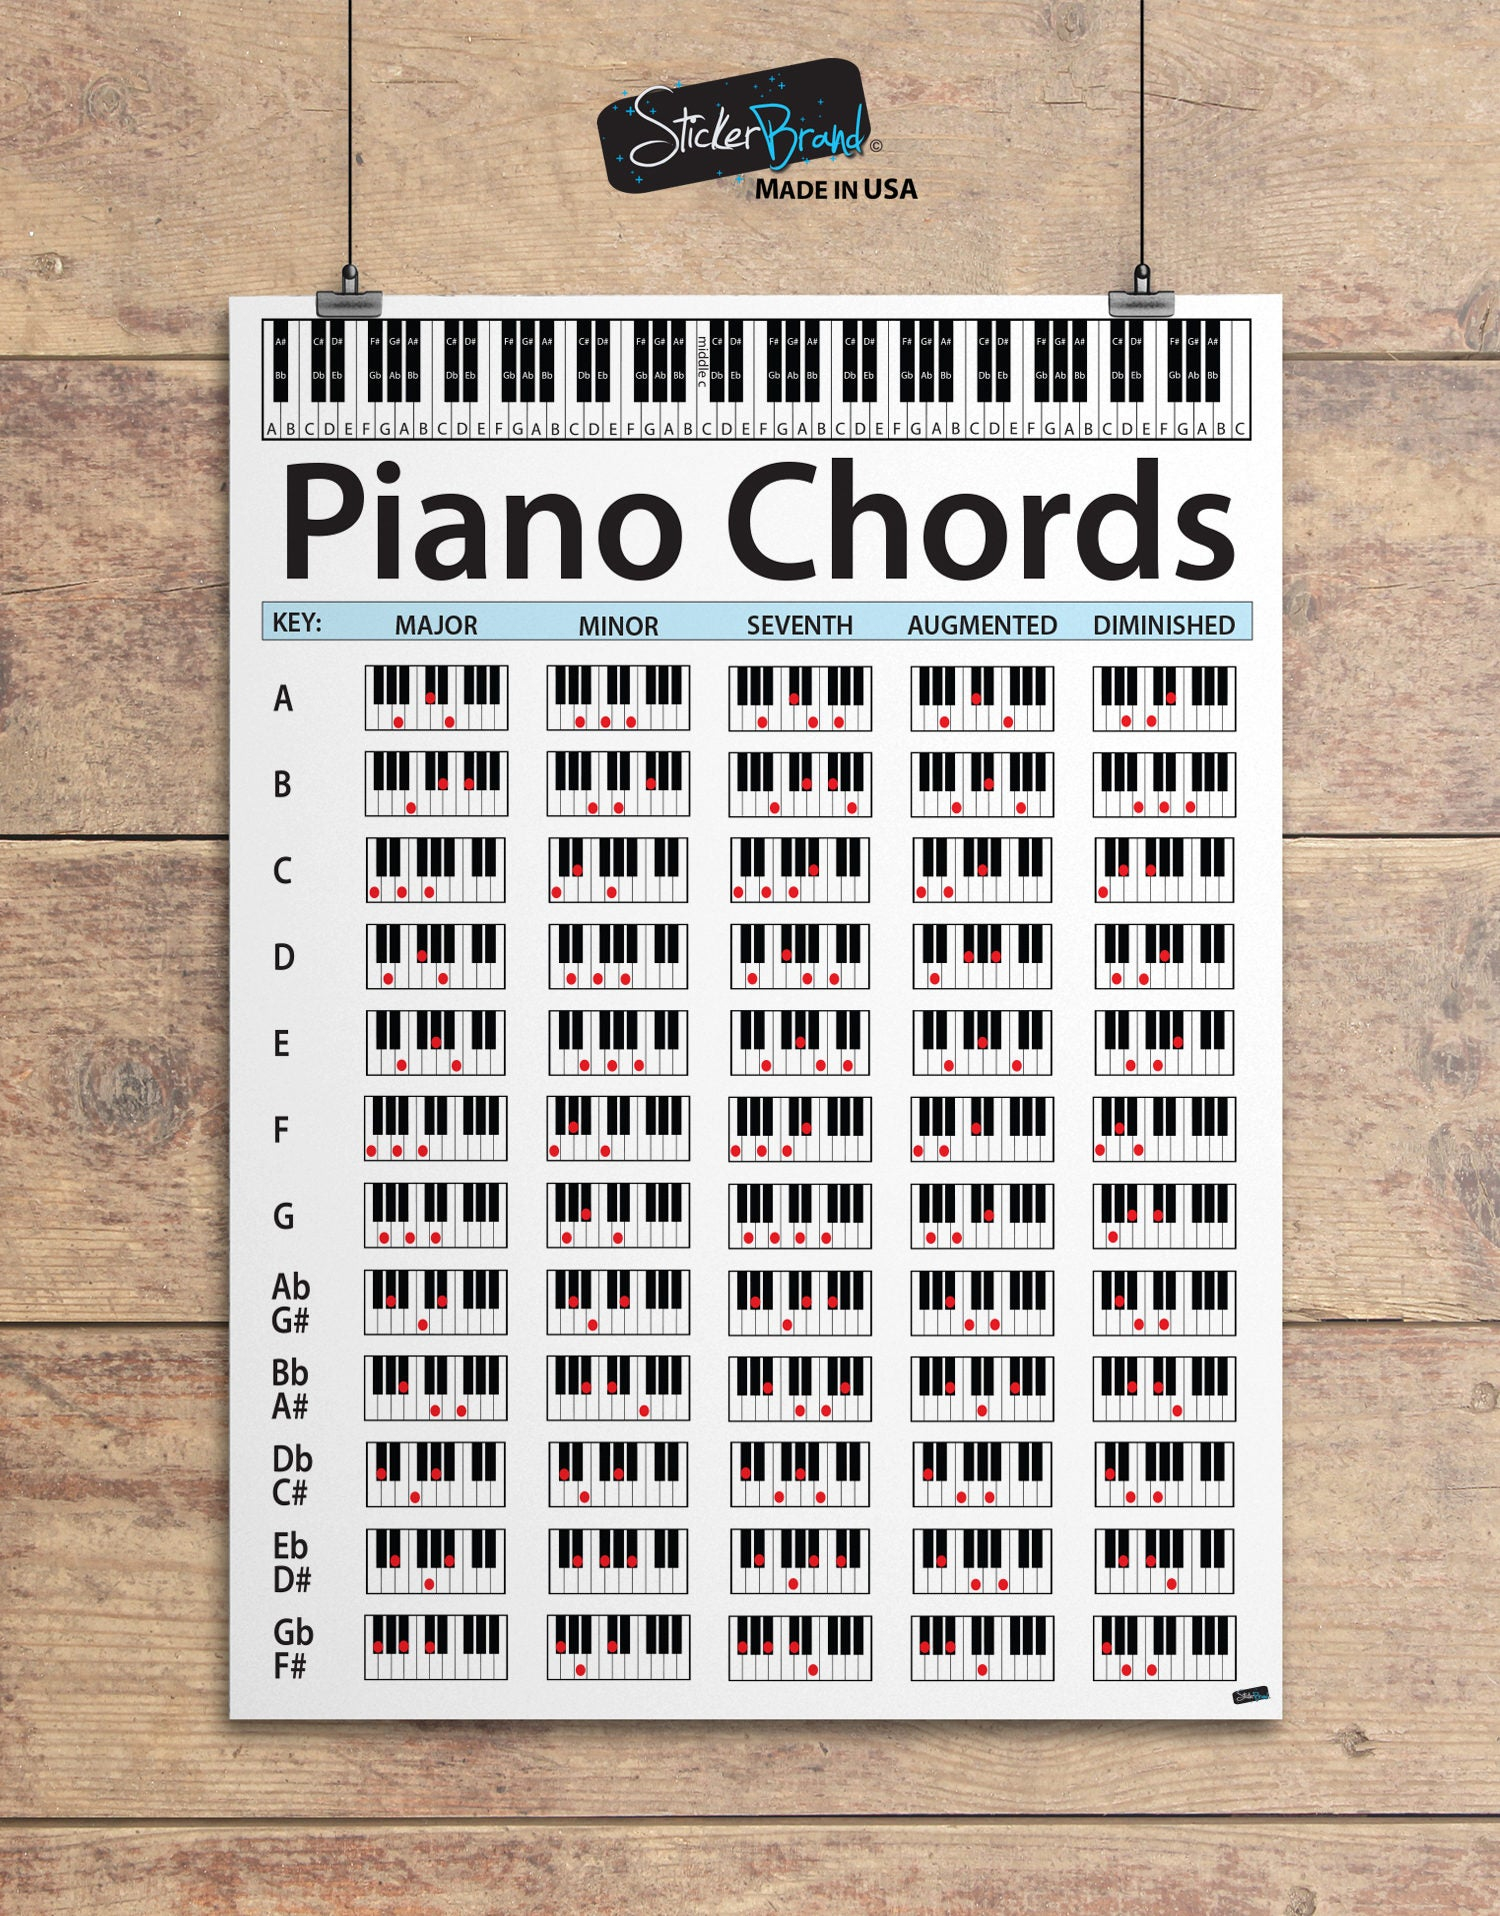 Piano Chords Chart Piano Chord Chart Poster Educational Handy Guide Chart Print For Keyboard Music Lessons P1001